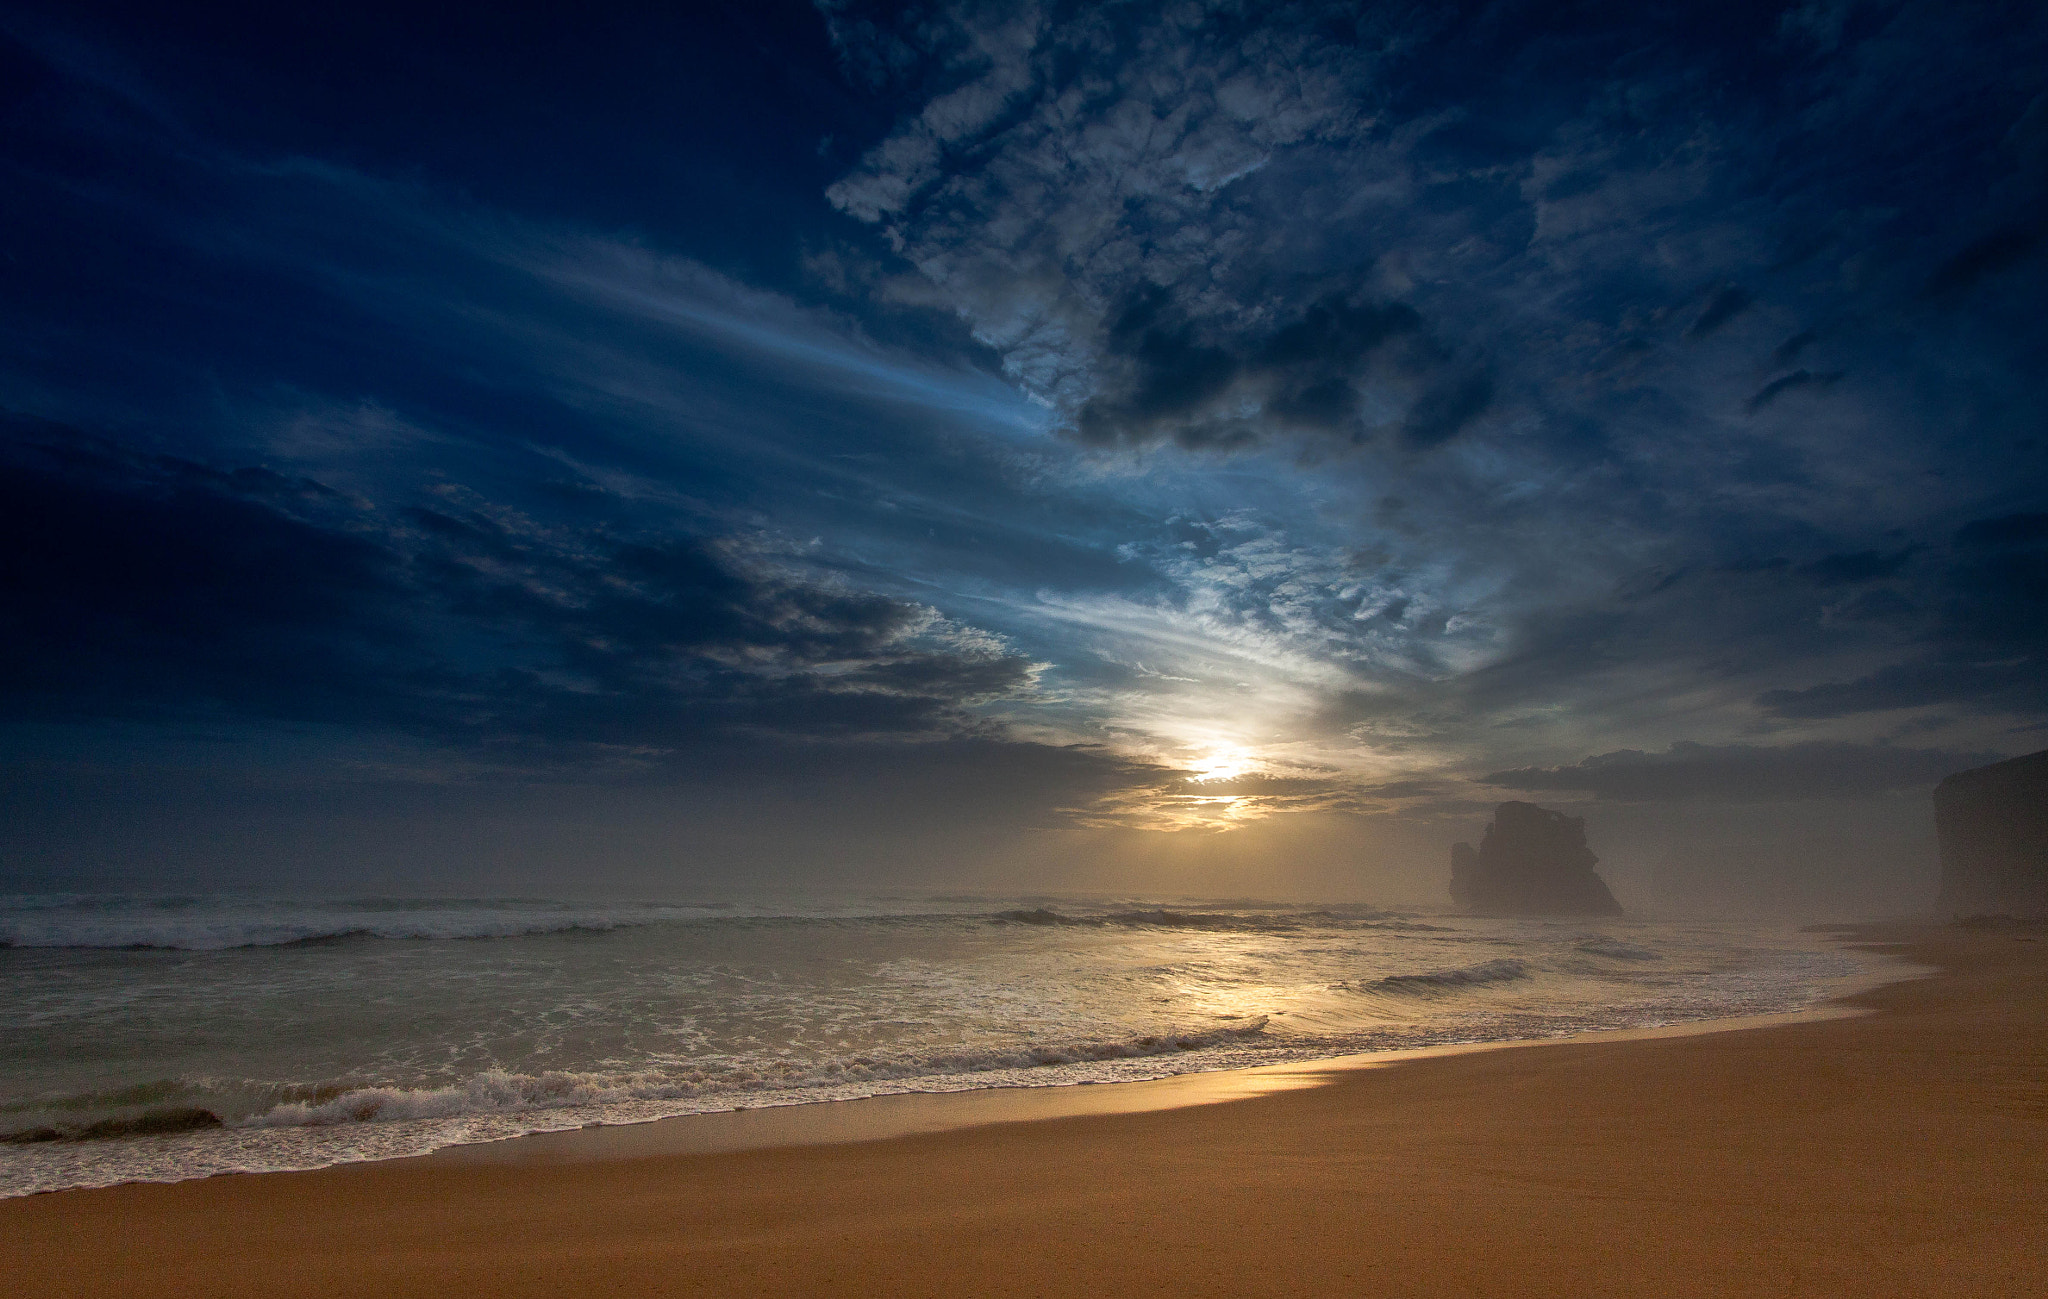 Photograph 'Hazy Beach At Dusk' by Jason Rosewarne on 500px